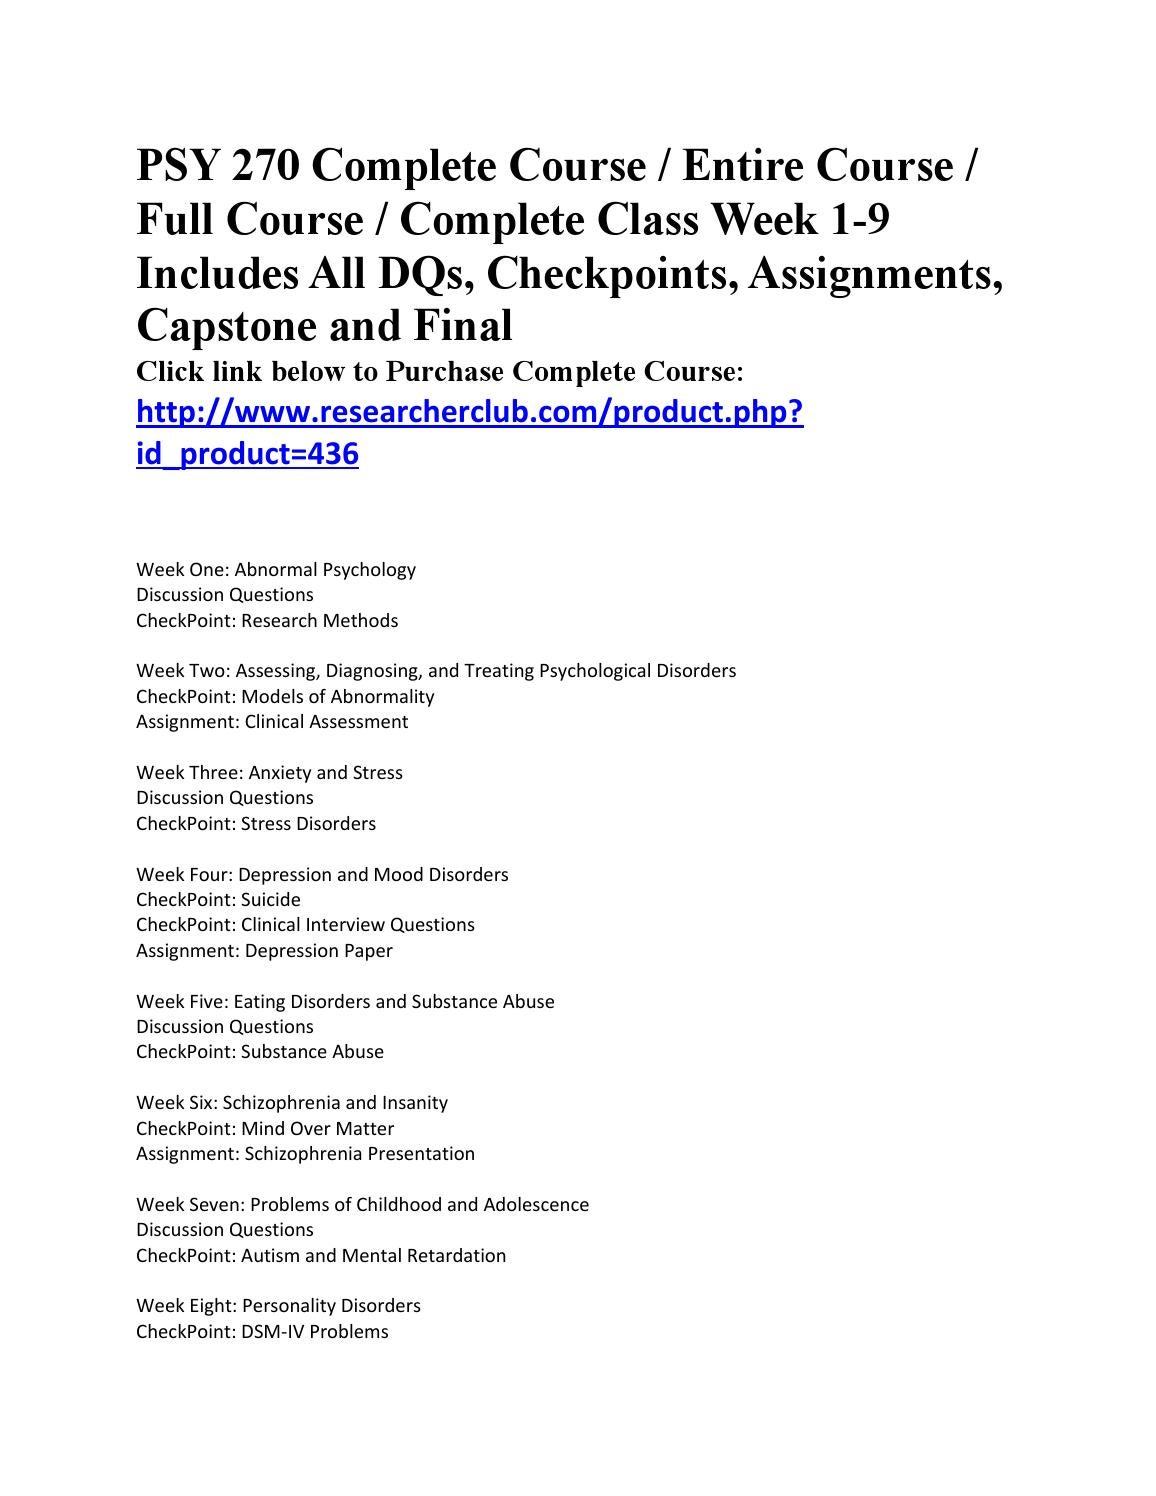 psy 270 clinical interview questions Study flashcards on psy 270 checkpoint clinical interview questions at cramcom quickly memorize the terms, phrases and much more we ensure that you will get a+ in the exam with wwwhwtutorialscom psy 270 checkpoint clinical interview questions http.